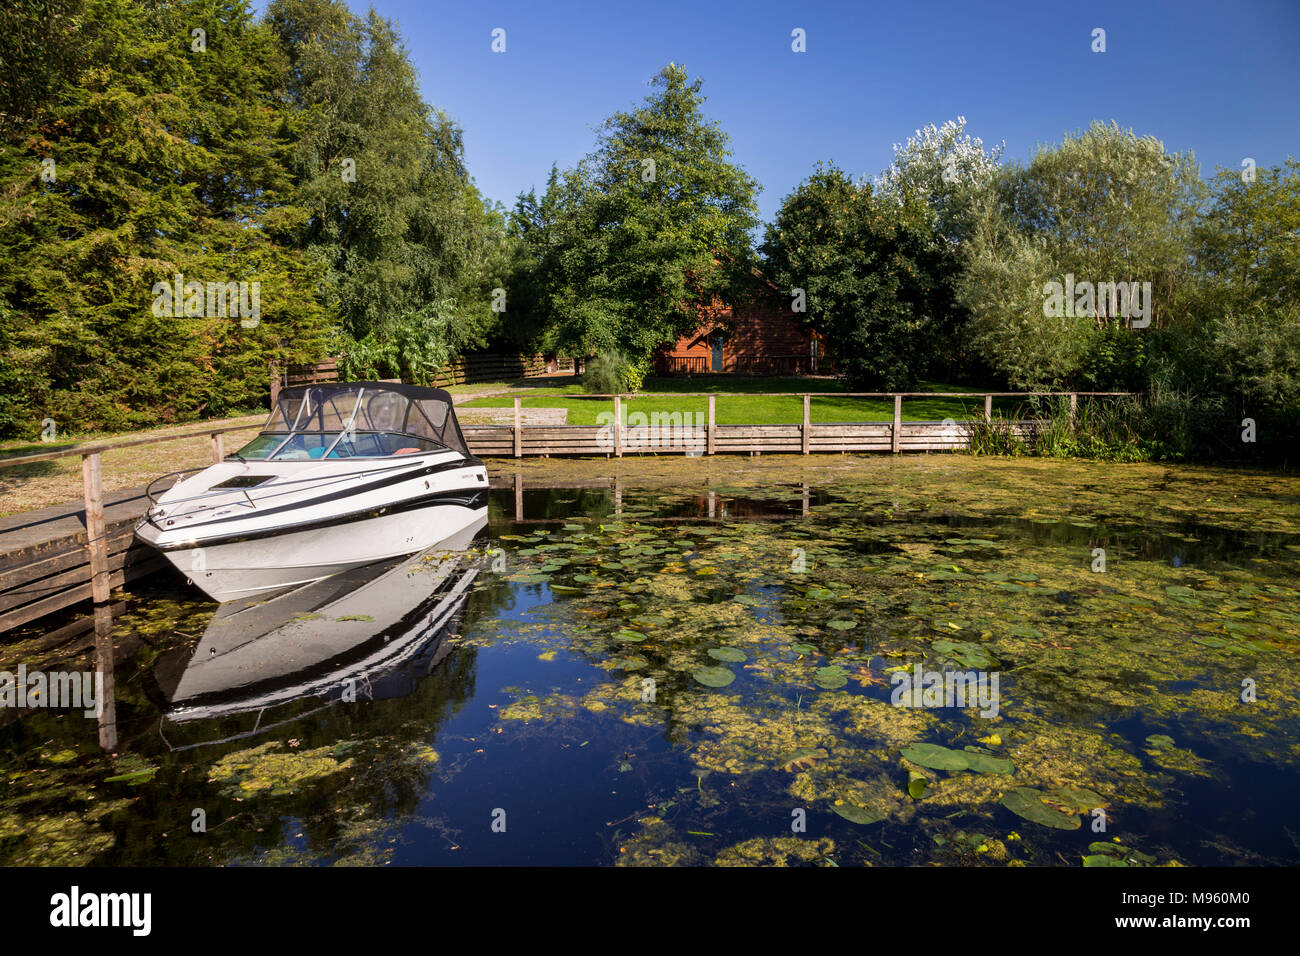 Boat moored in an inlet of Lough Derg, County Clare, Ireland on a sunny day - Stock Image